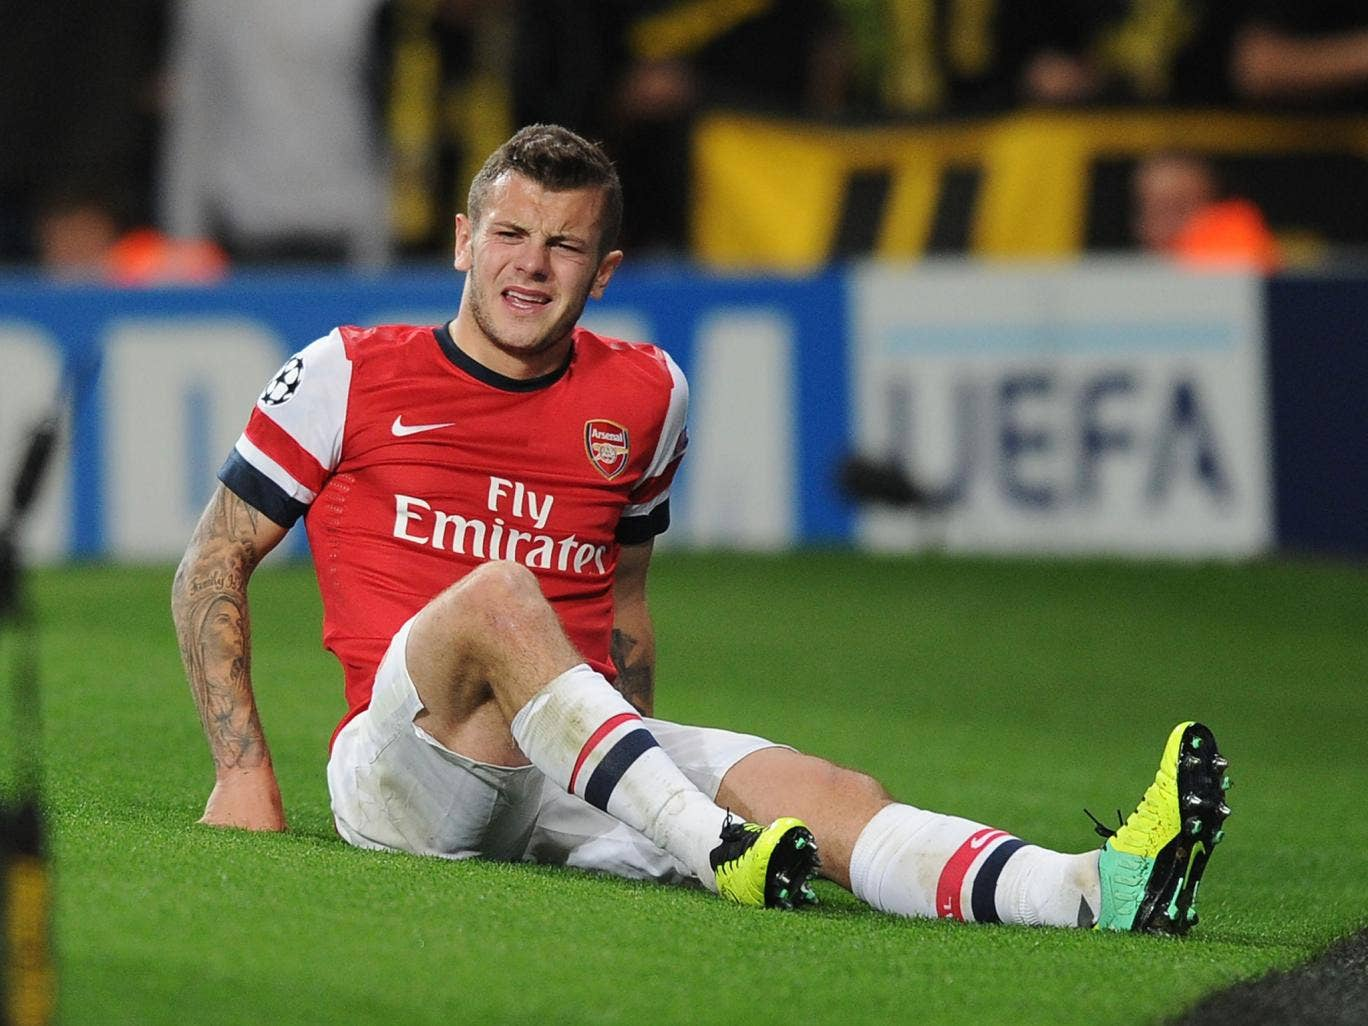 Jack Wilshere will be monitored by Arsene Wenger ahead of Arsenal's trip to Crystal Palace